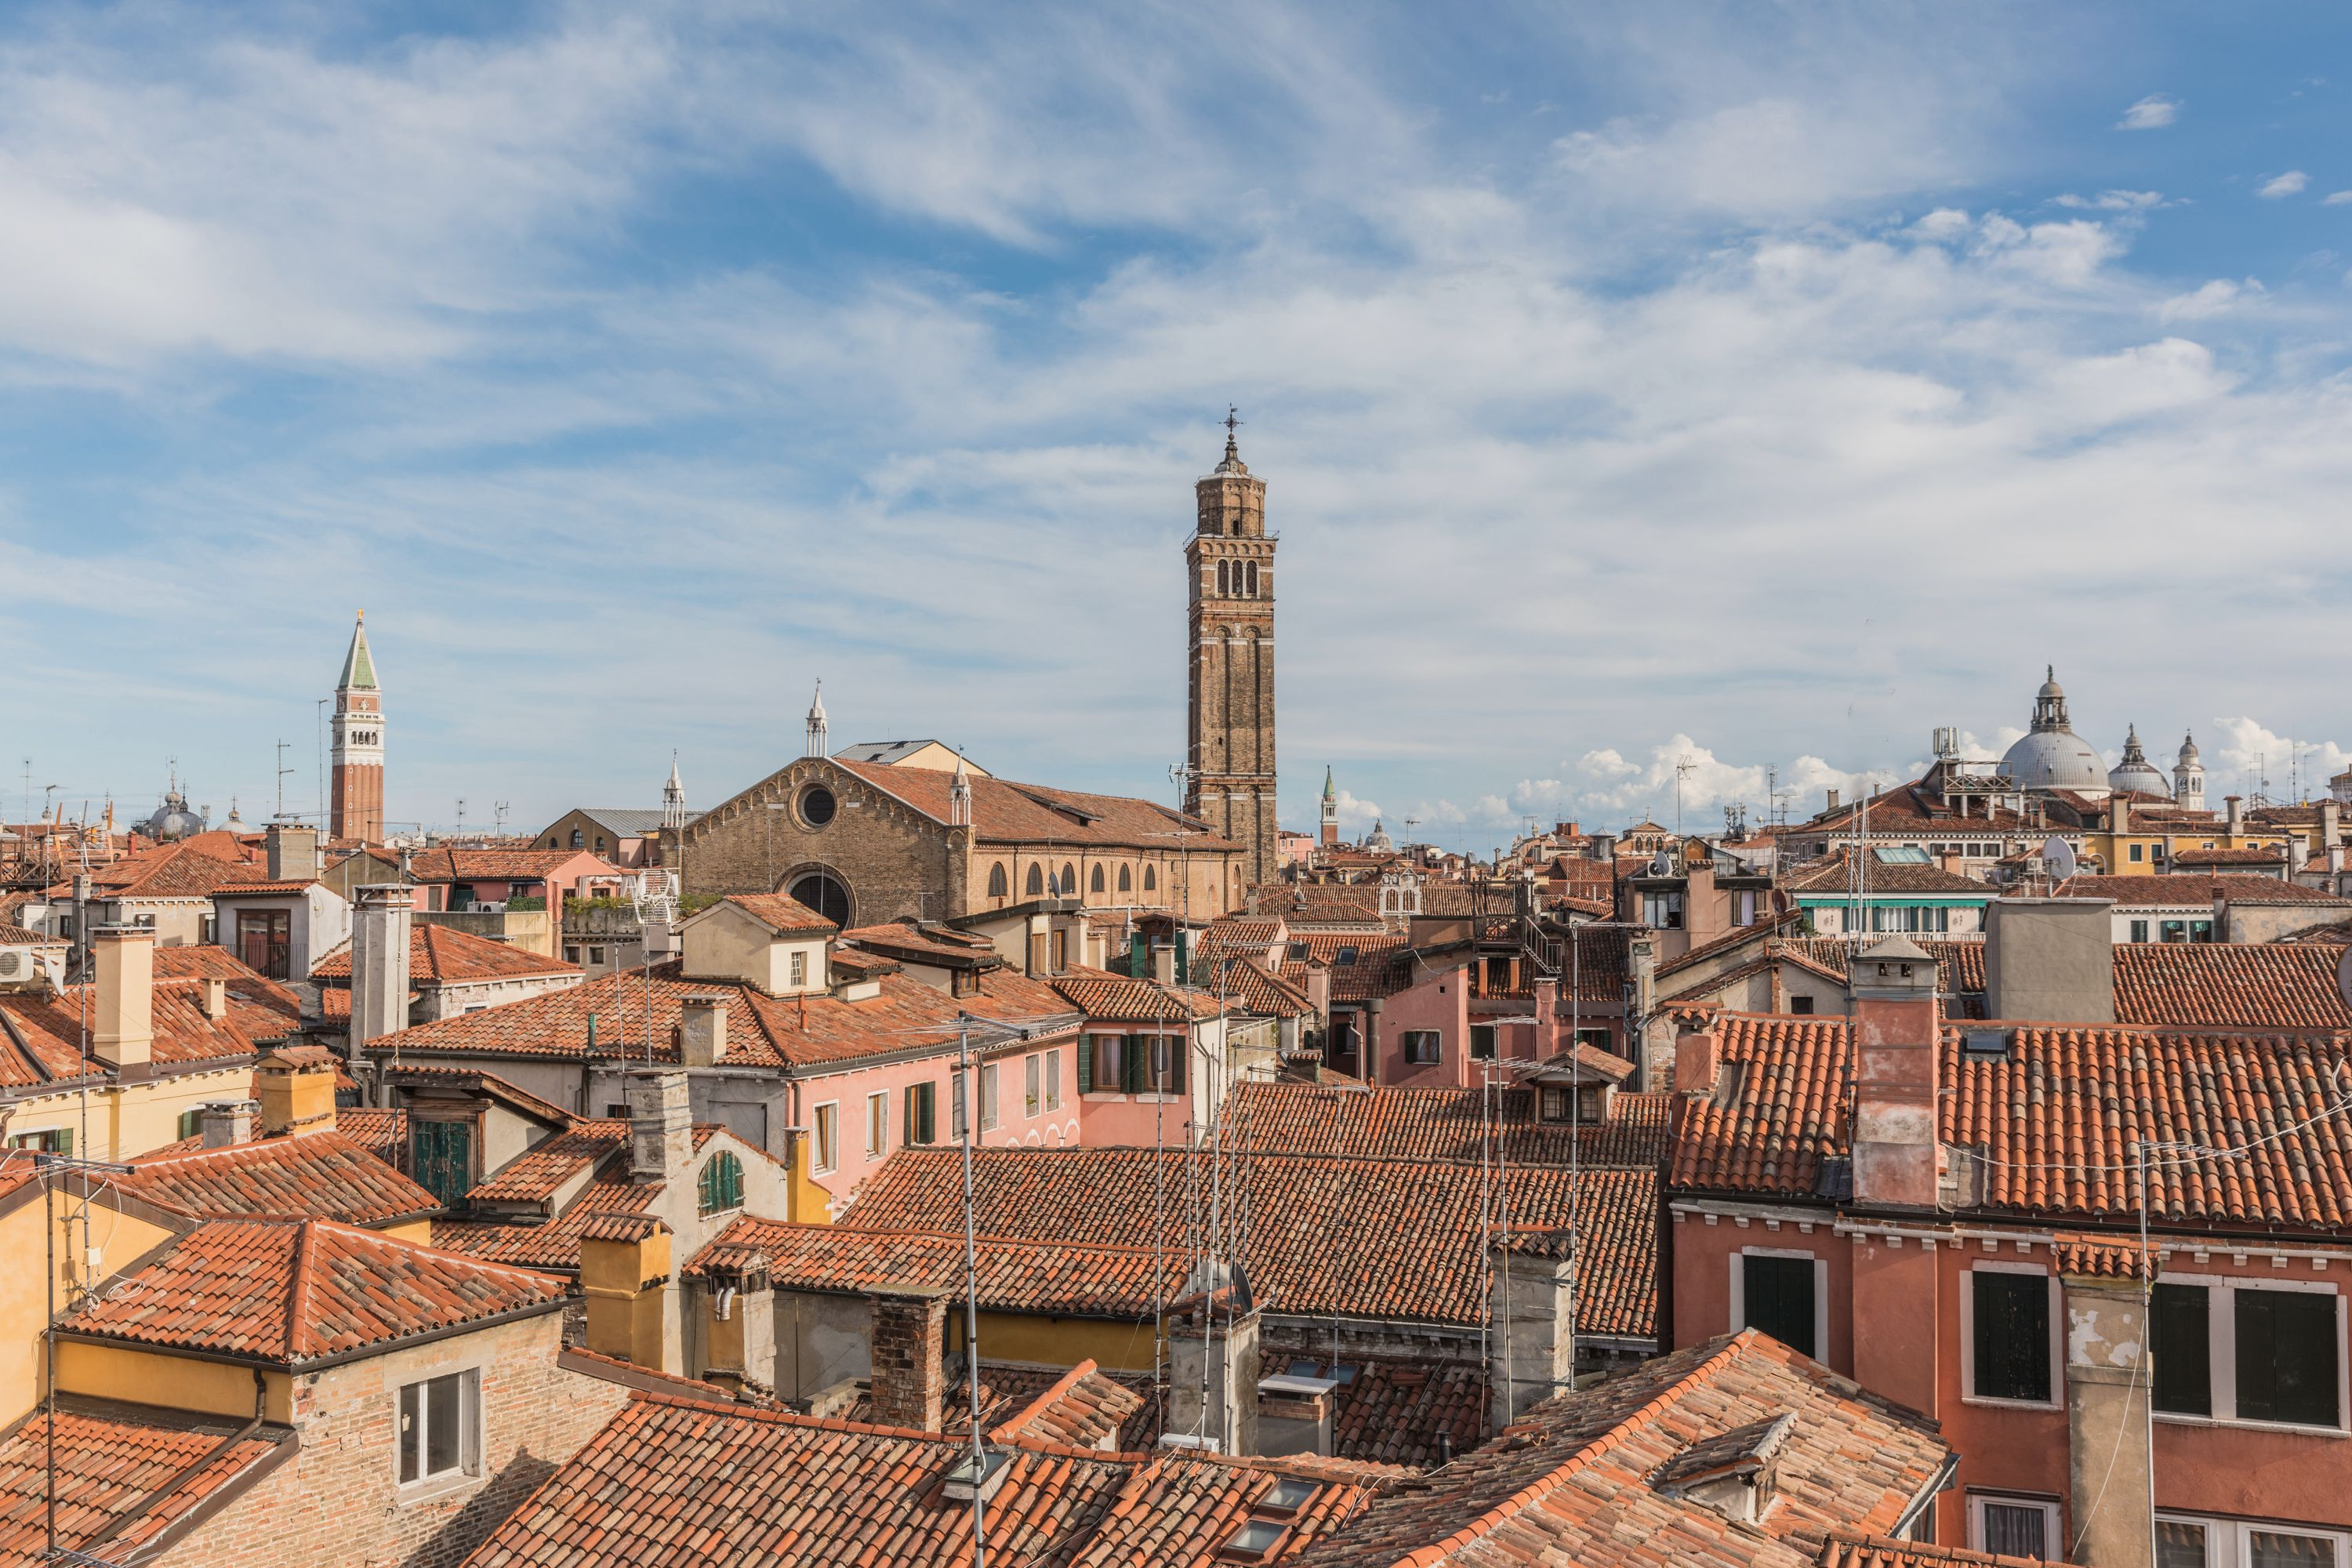 the 360 degrees panoramic view over the roof-tops of San Marco is simply breathtaking!